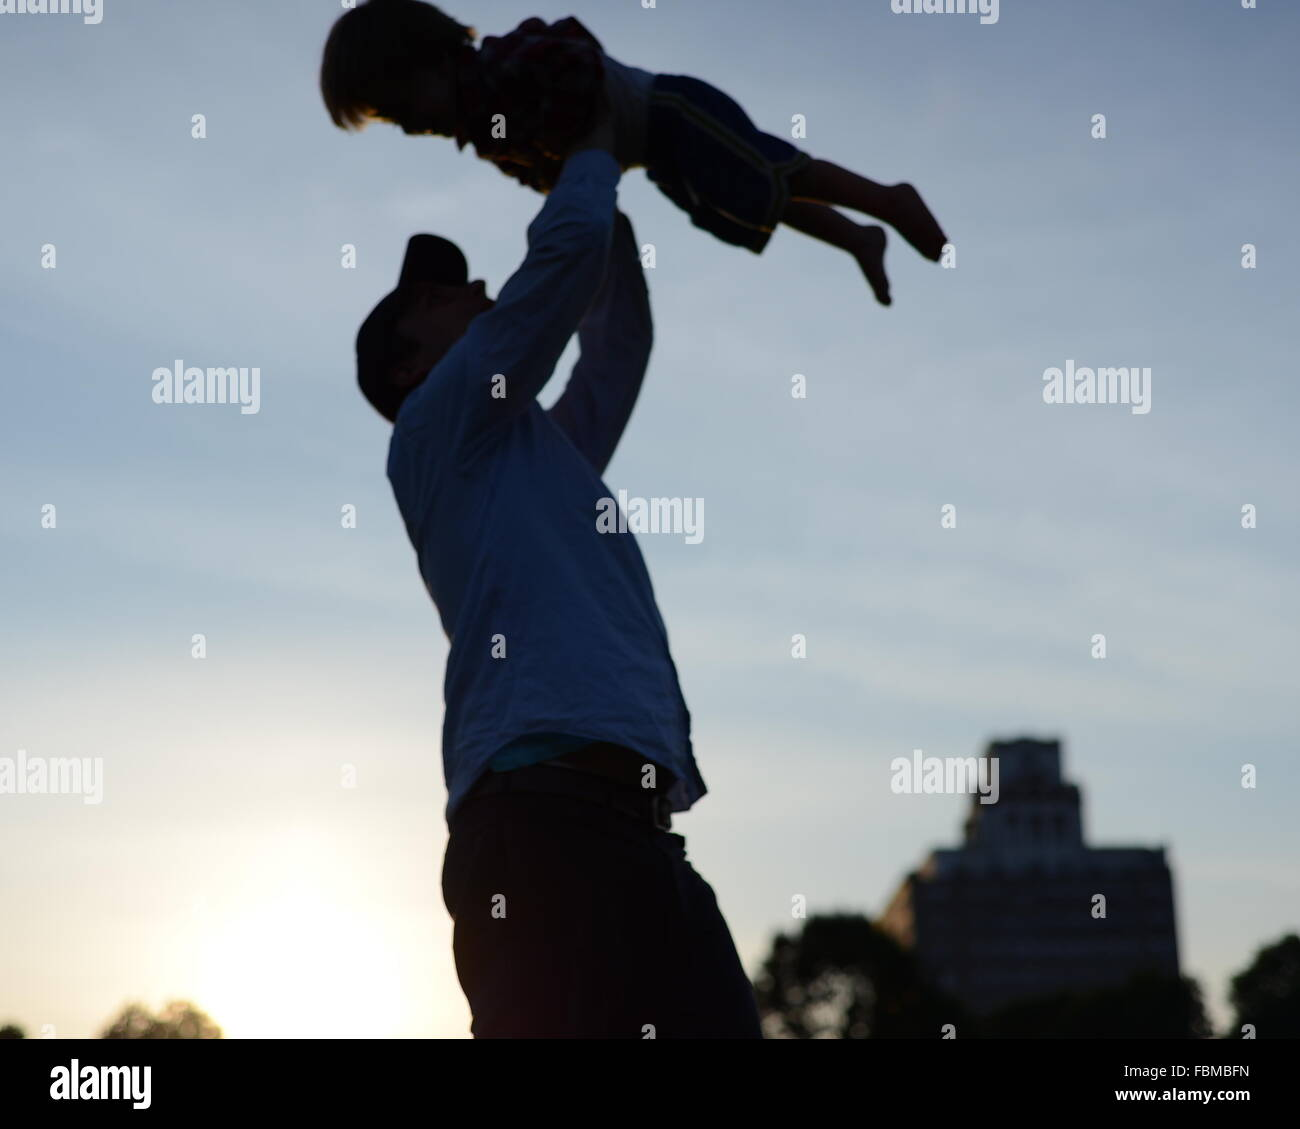 Low Angle View Of Man Carrying Baby Against The Sky - Stock Image